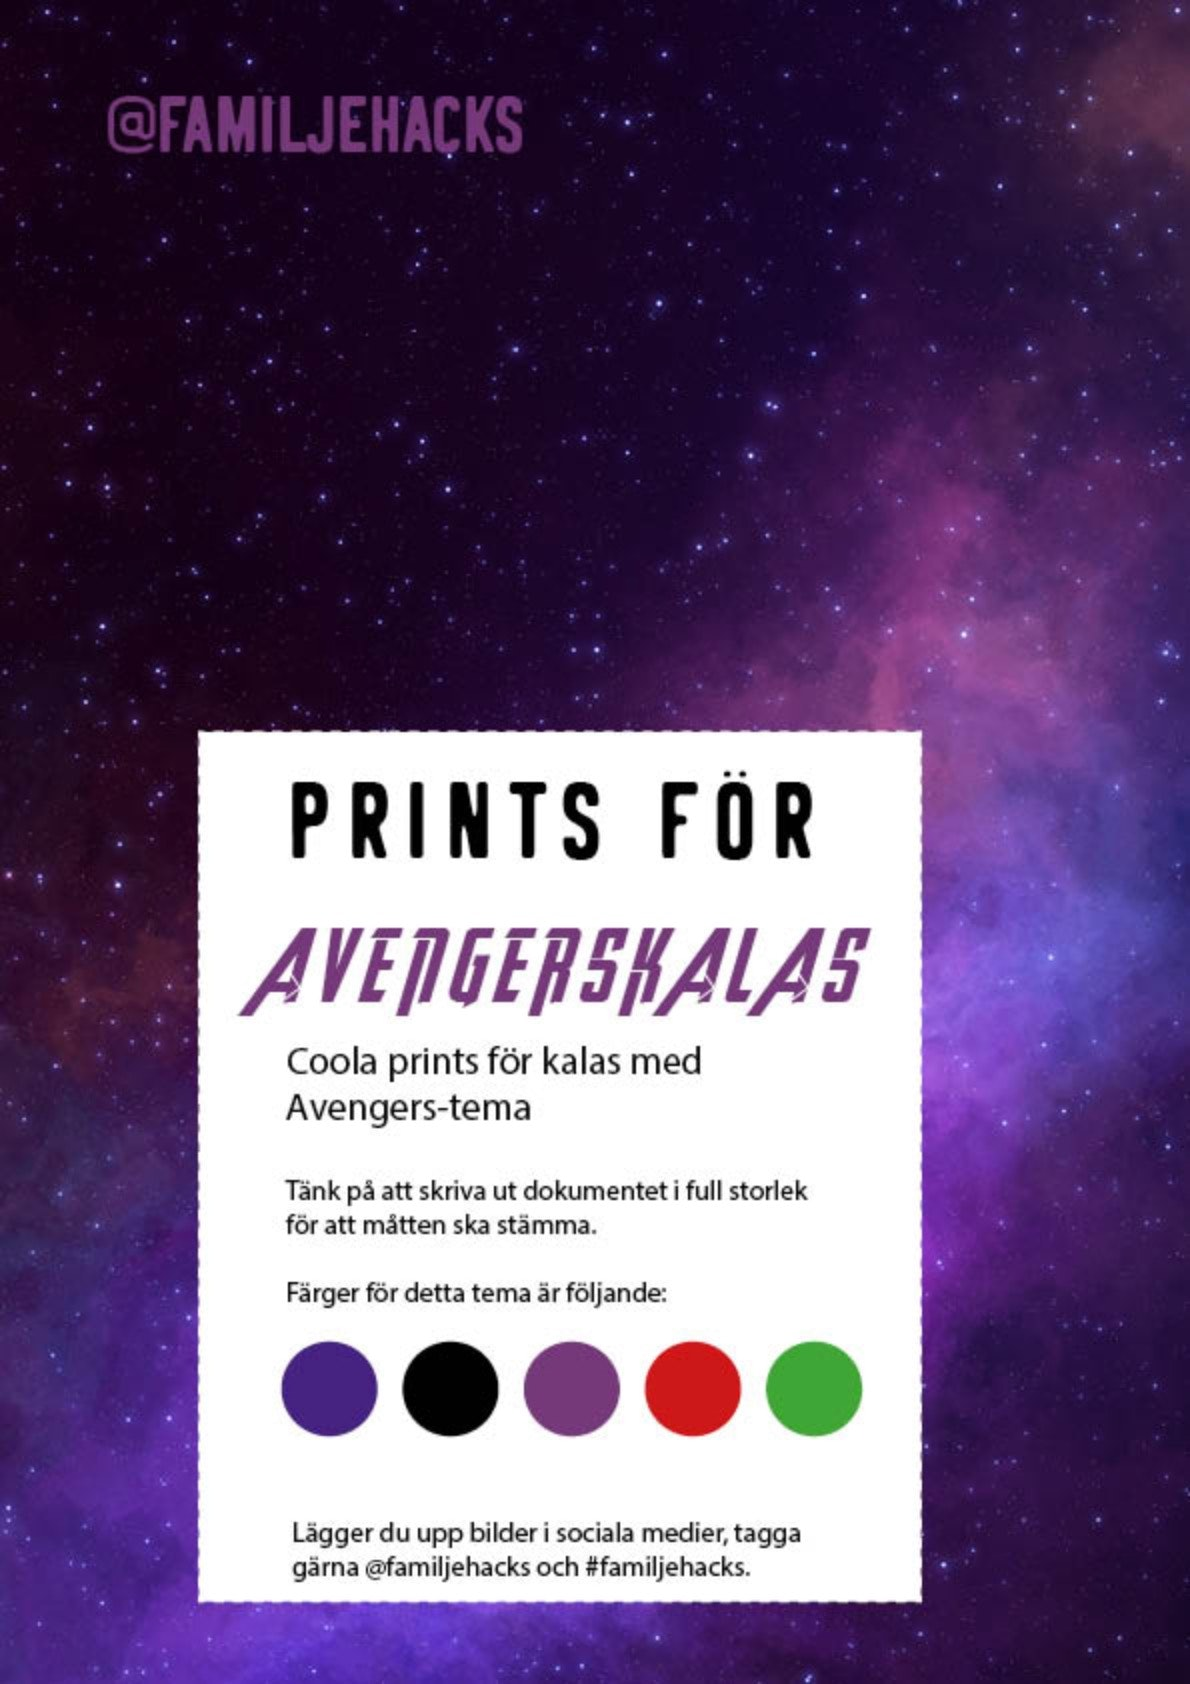 Avengersparty prints